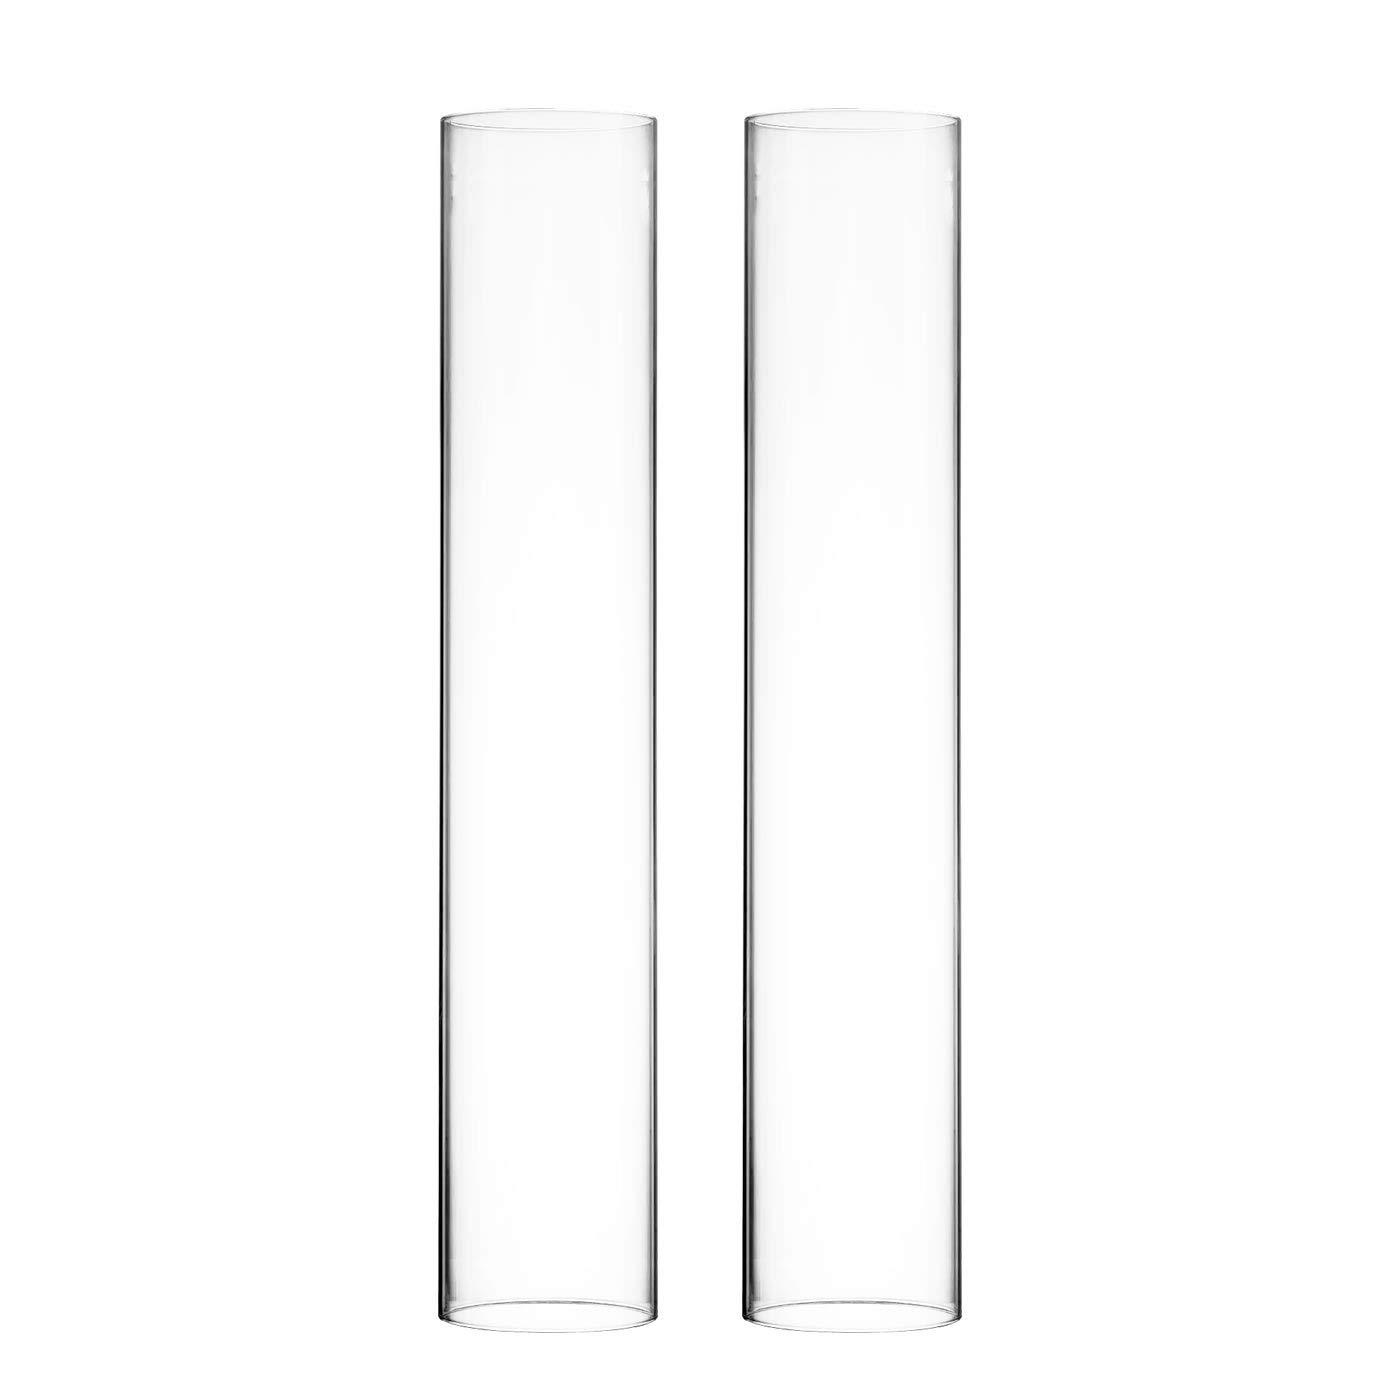 CYS EXCEL Pack of 6 Glass Hurricane Candle Holders, Tabletop Protection Decoration, Chimney Tube, Glass Cylinder Open Both Ends, Open Ended Hurricane, Candle Shade (4'' Wide x 24'' Tall)